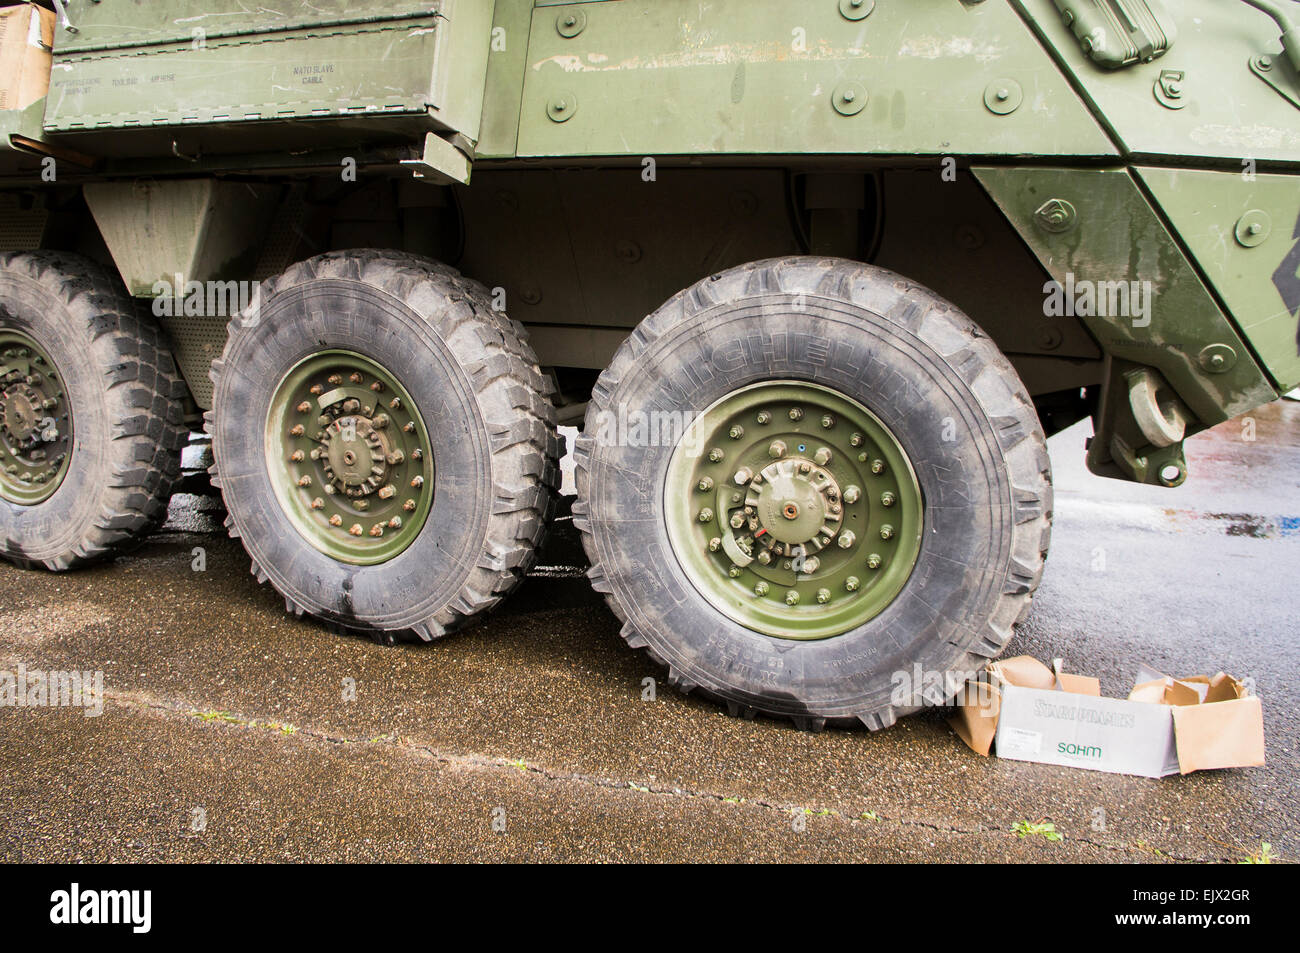 Armored Fighting Vehicle Stockfotos & Armored Fighting Vehicle ...